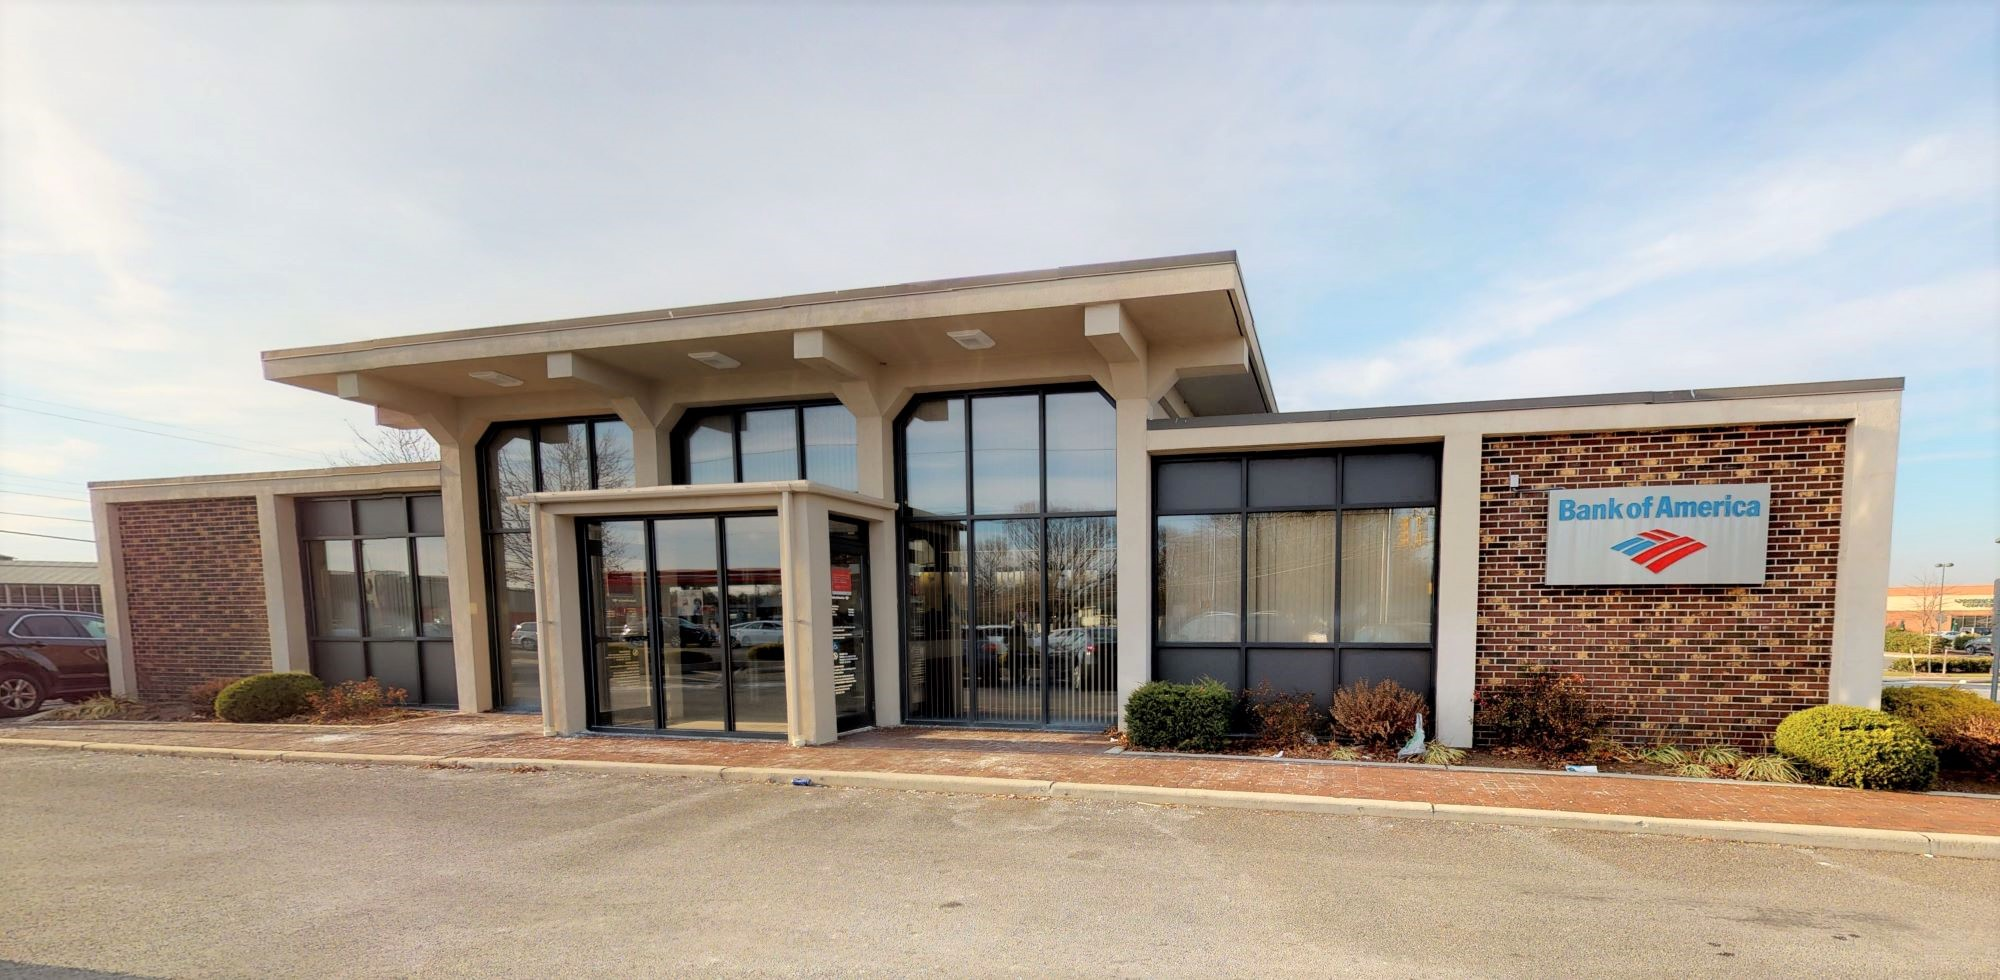 Bank of America financial center with drive-thru ATM   321 New Rd, Somers Point, NJ 08244